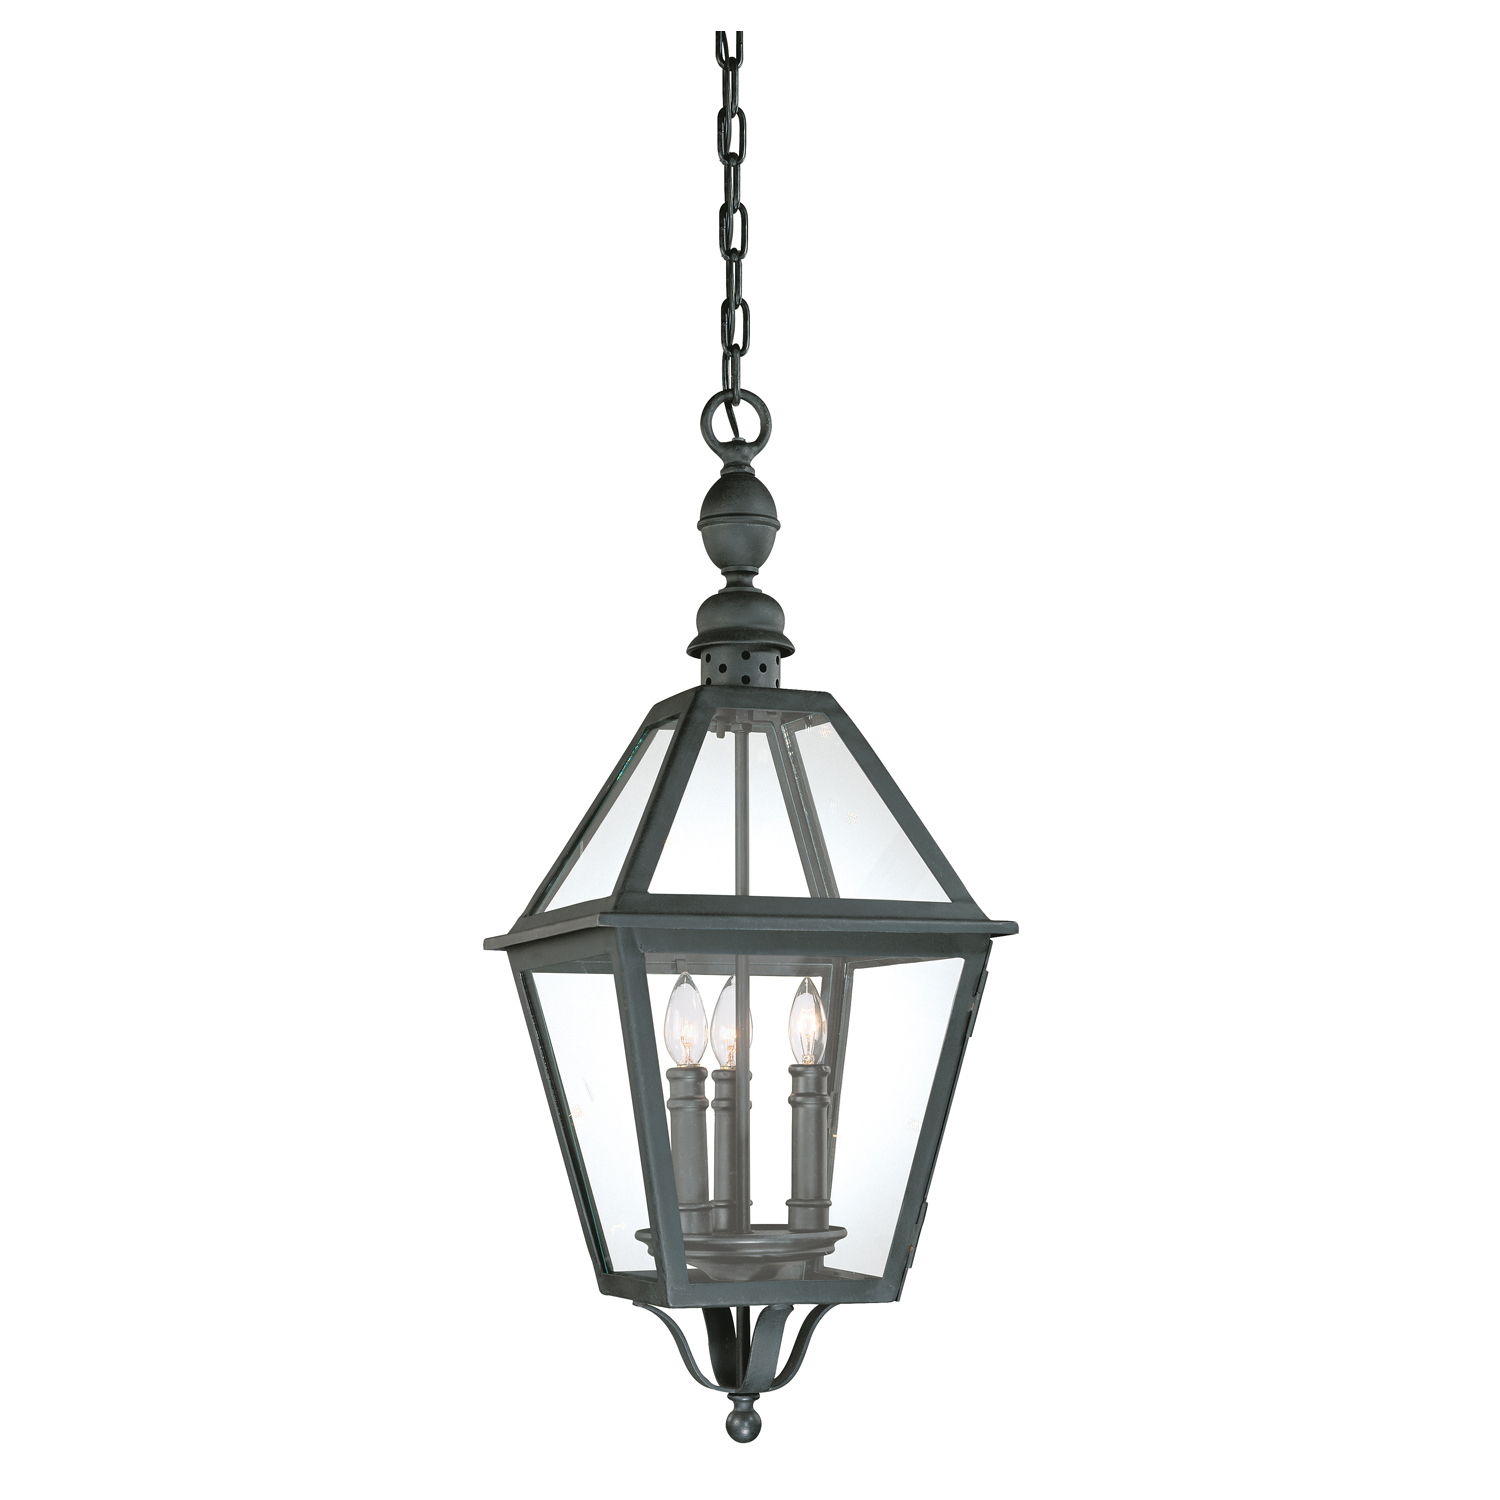 Townsend Hanging Lantern By Troy Lighting